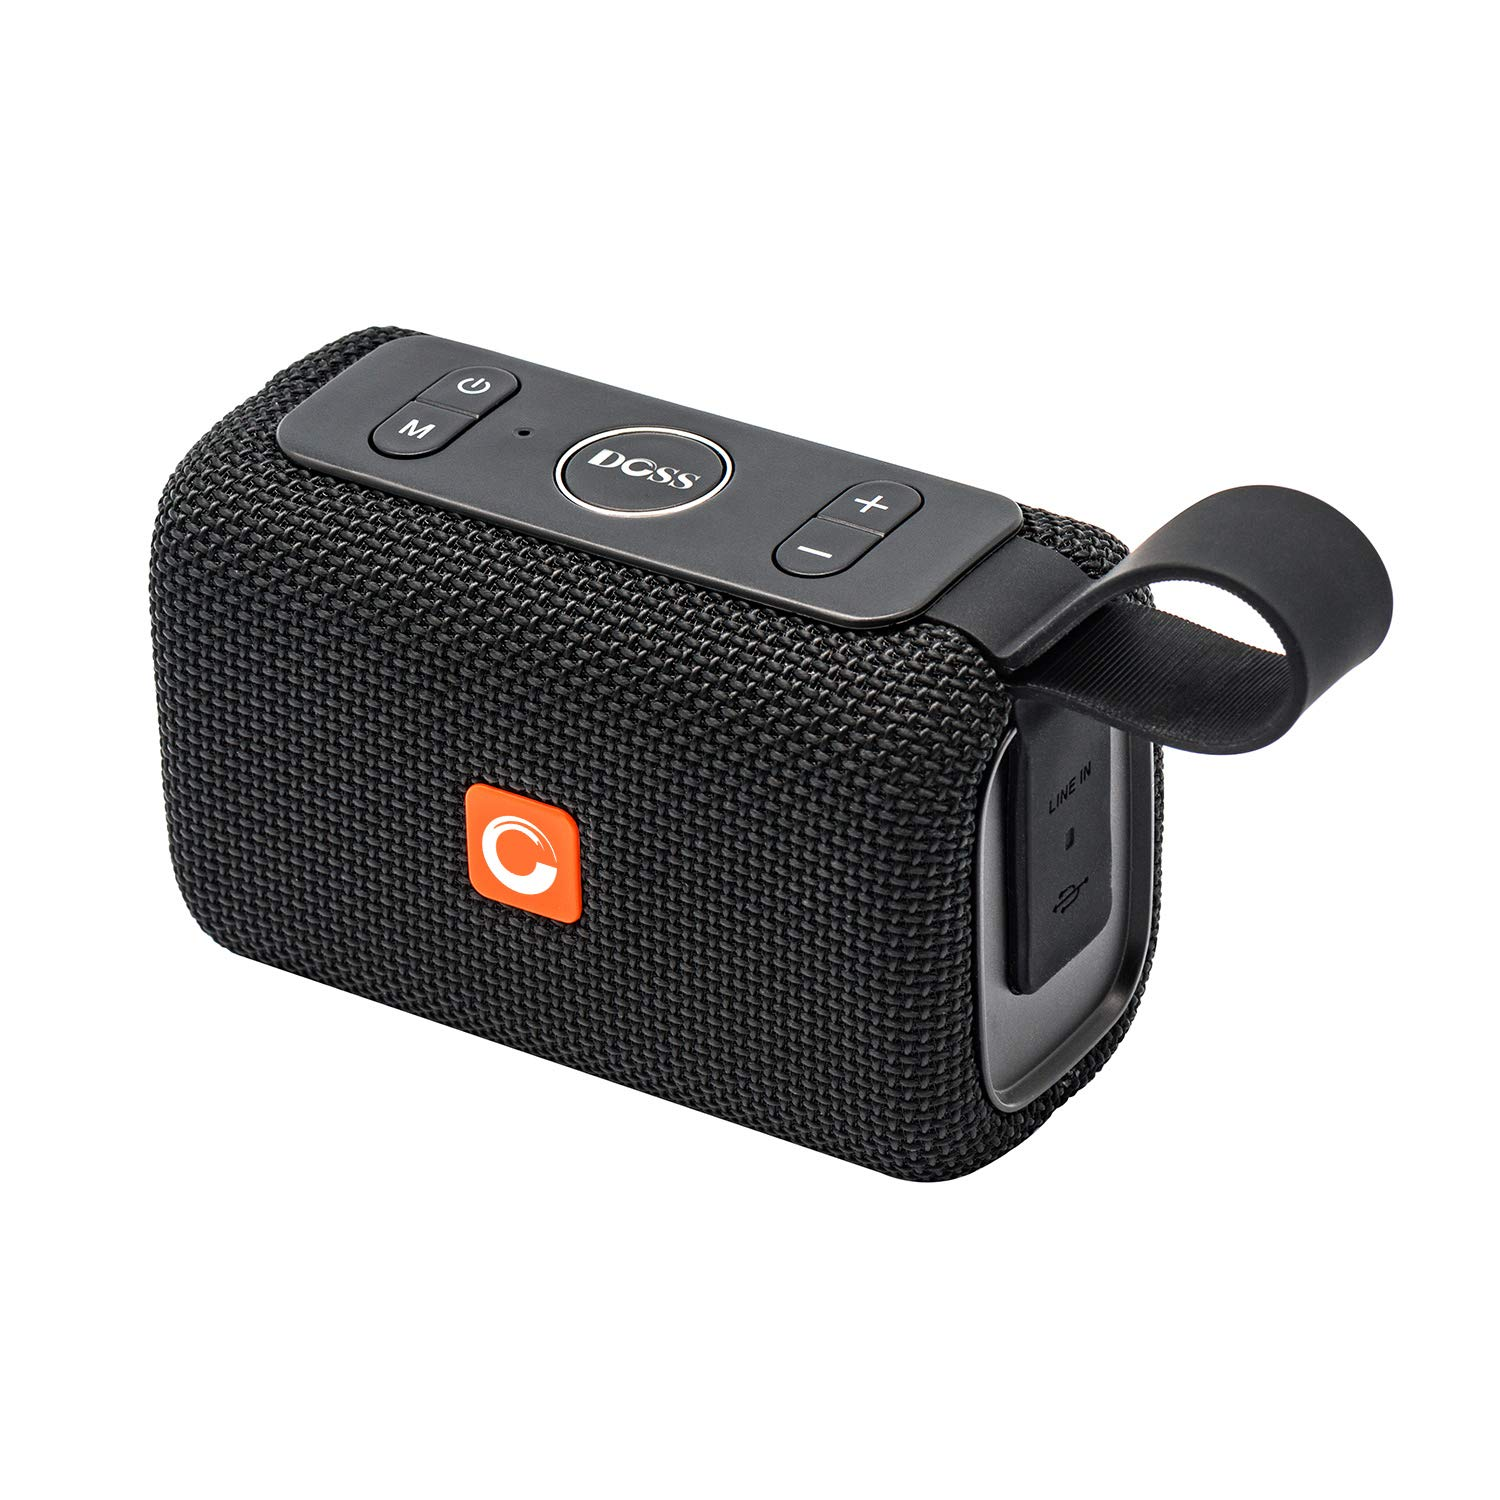 DOSS E-Go Portable Bluetooth Speaker with Loud Volume, Increased Bass, IPX6 Waterproof, Built-in Mic.